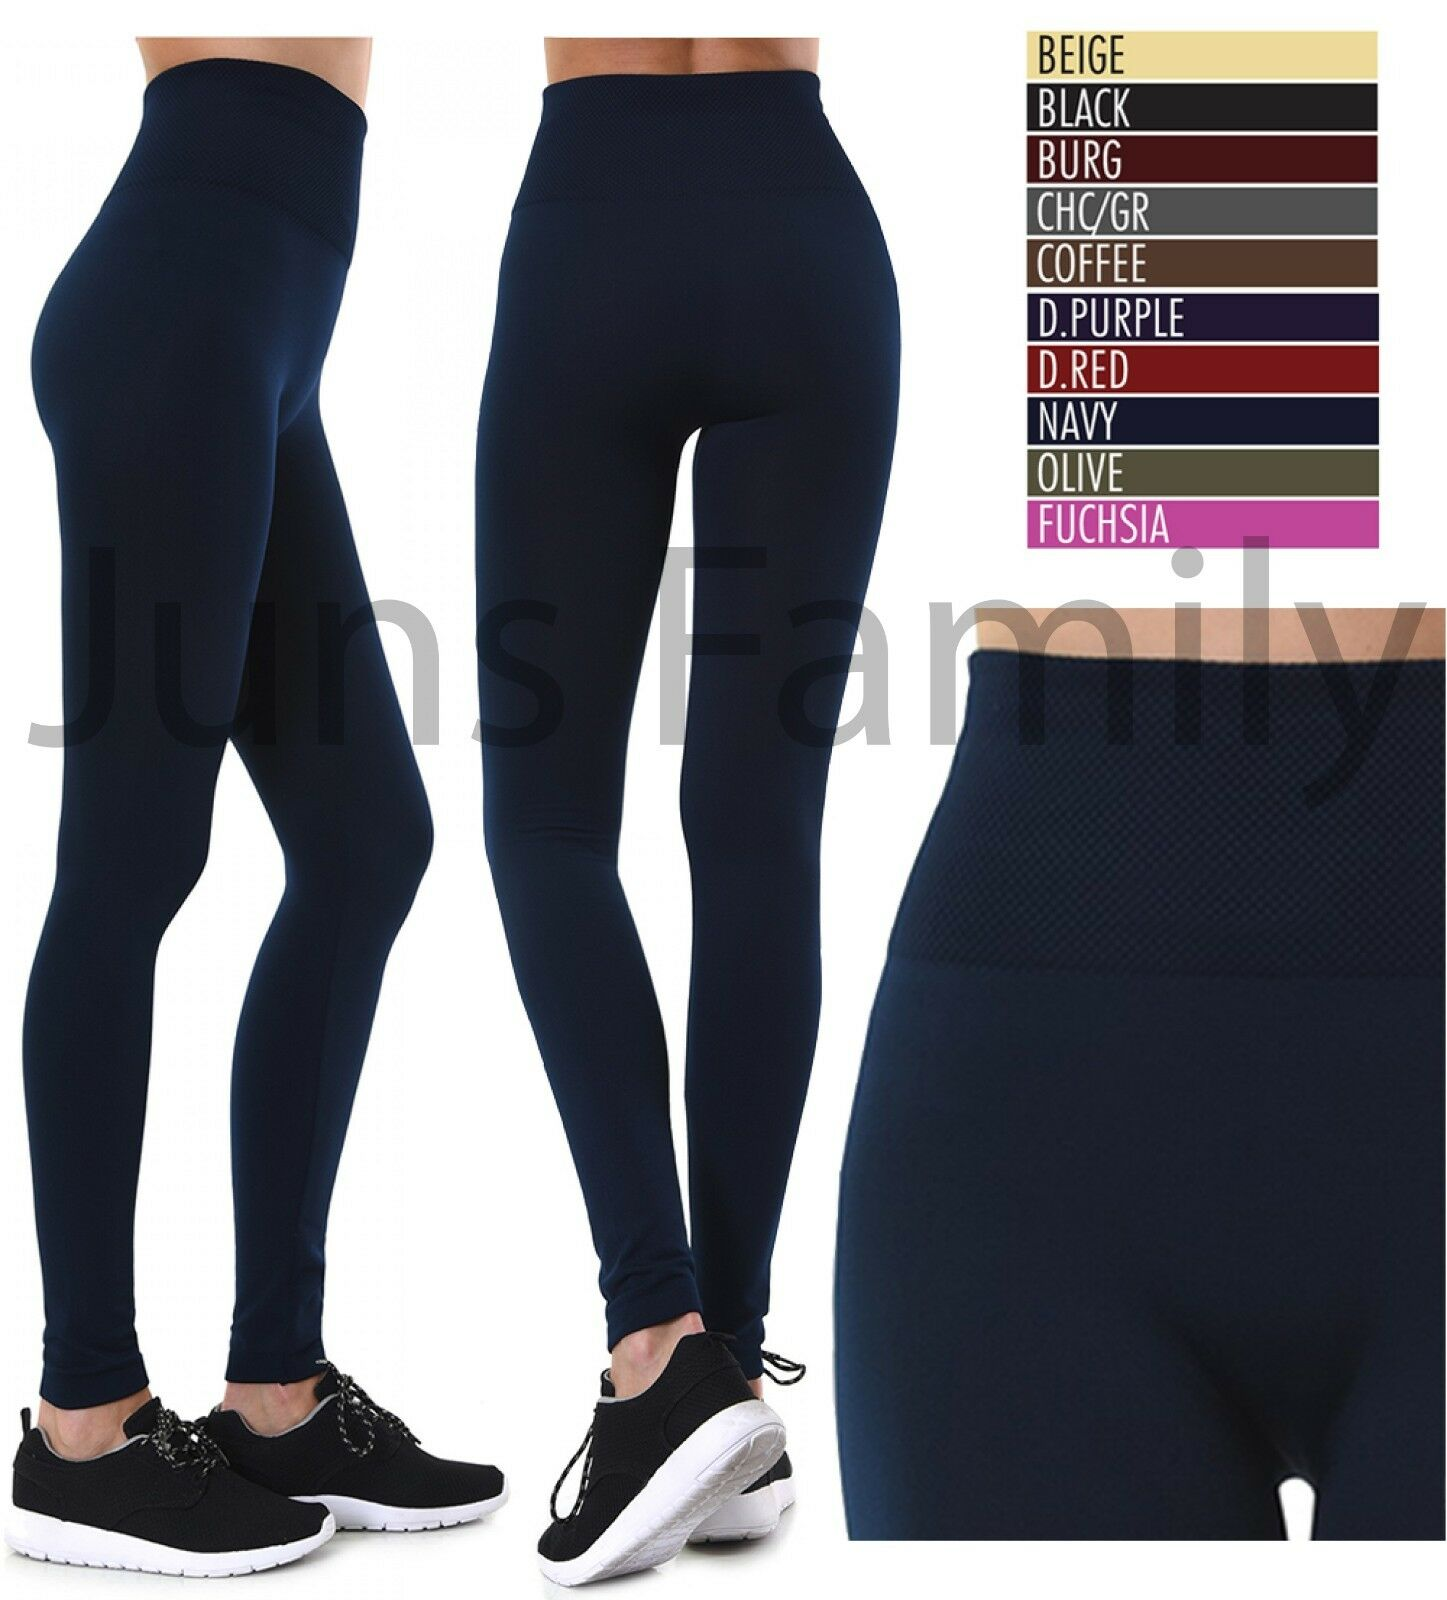 Leggings - Women NEW EXTRA WIDE BAND High Waist Tummy control Fleece Thick Warm Leggings